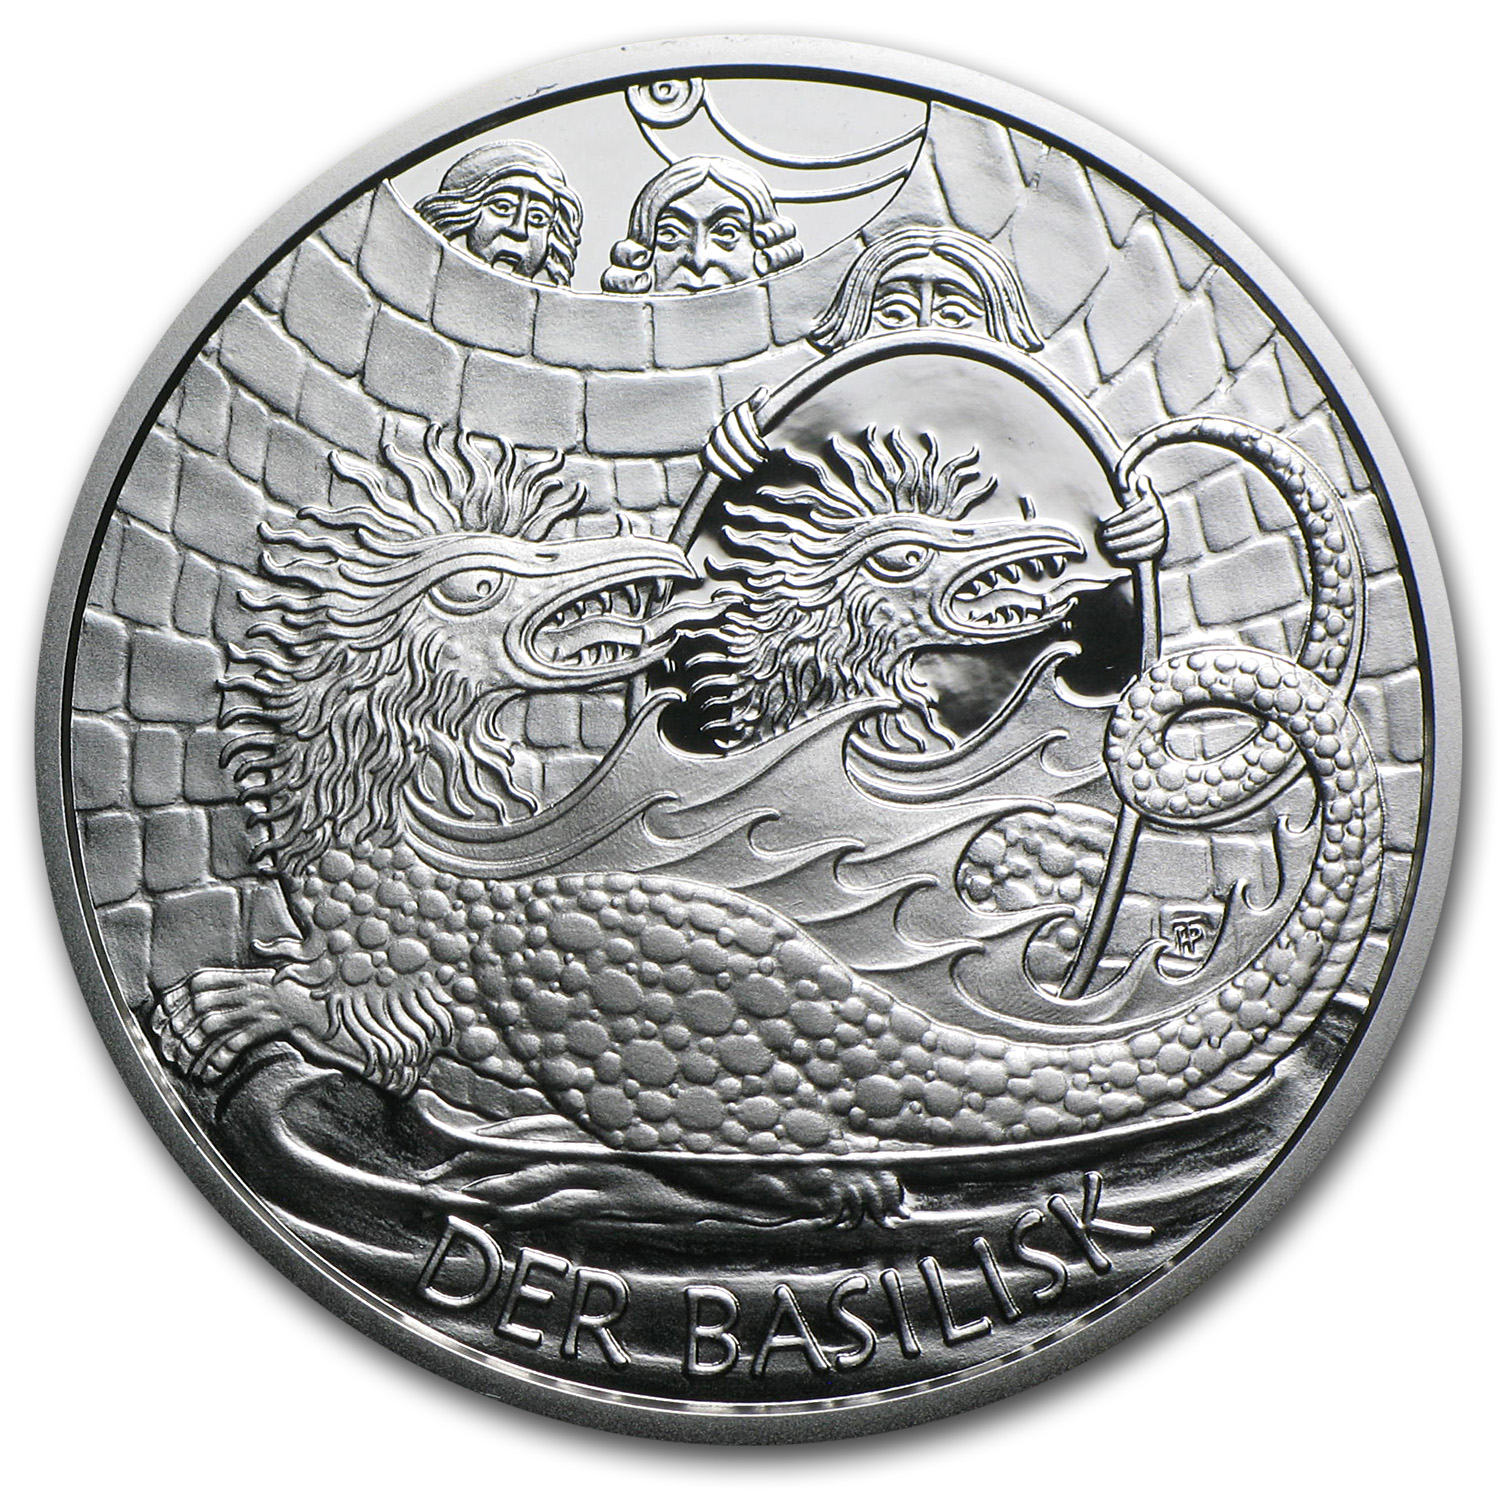 2009 The Basilisk of Vienna 10 Euro Silver Proof Coin ASW 0.4758